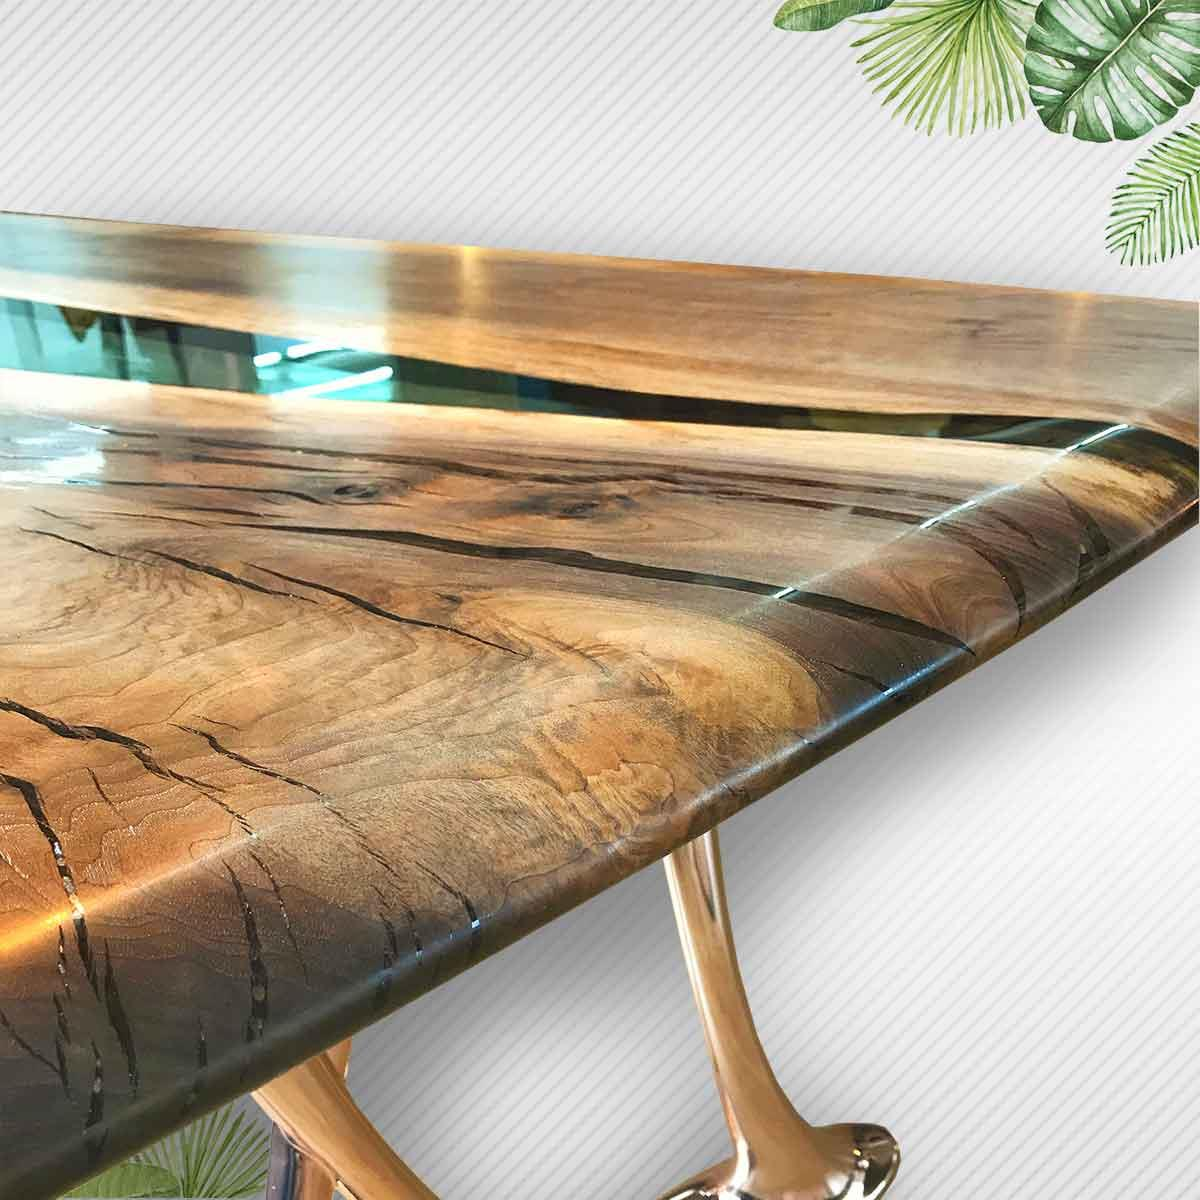 Strange High Quality Epoxy Natural Or Live Edge Slab Wood Table Ibusinesslaw Wood Chair Design Ideas Ibusinesslaworg